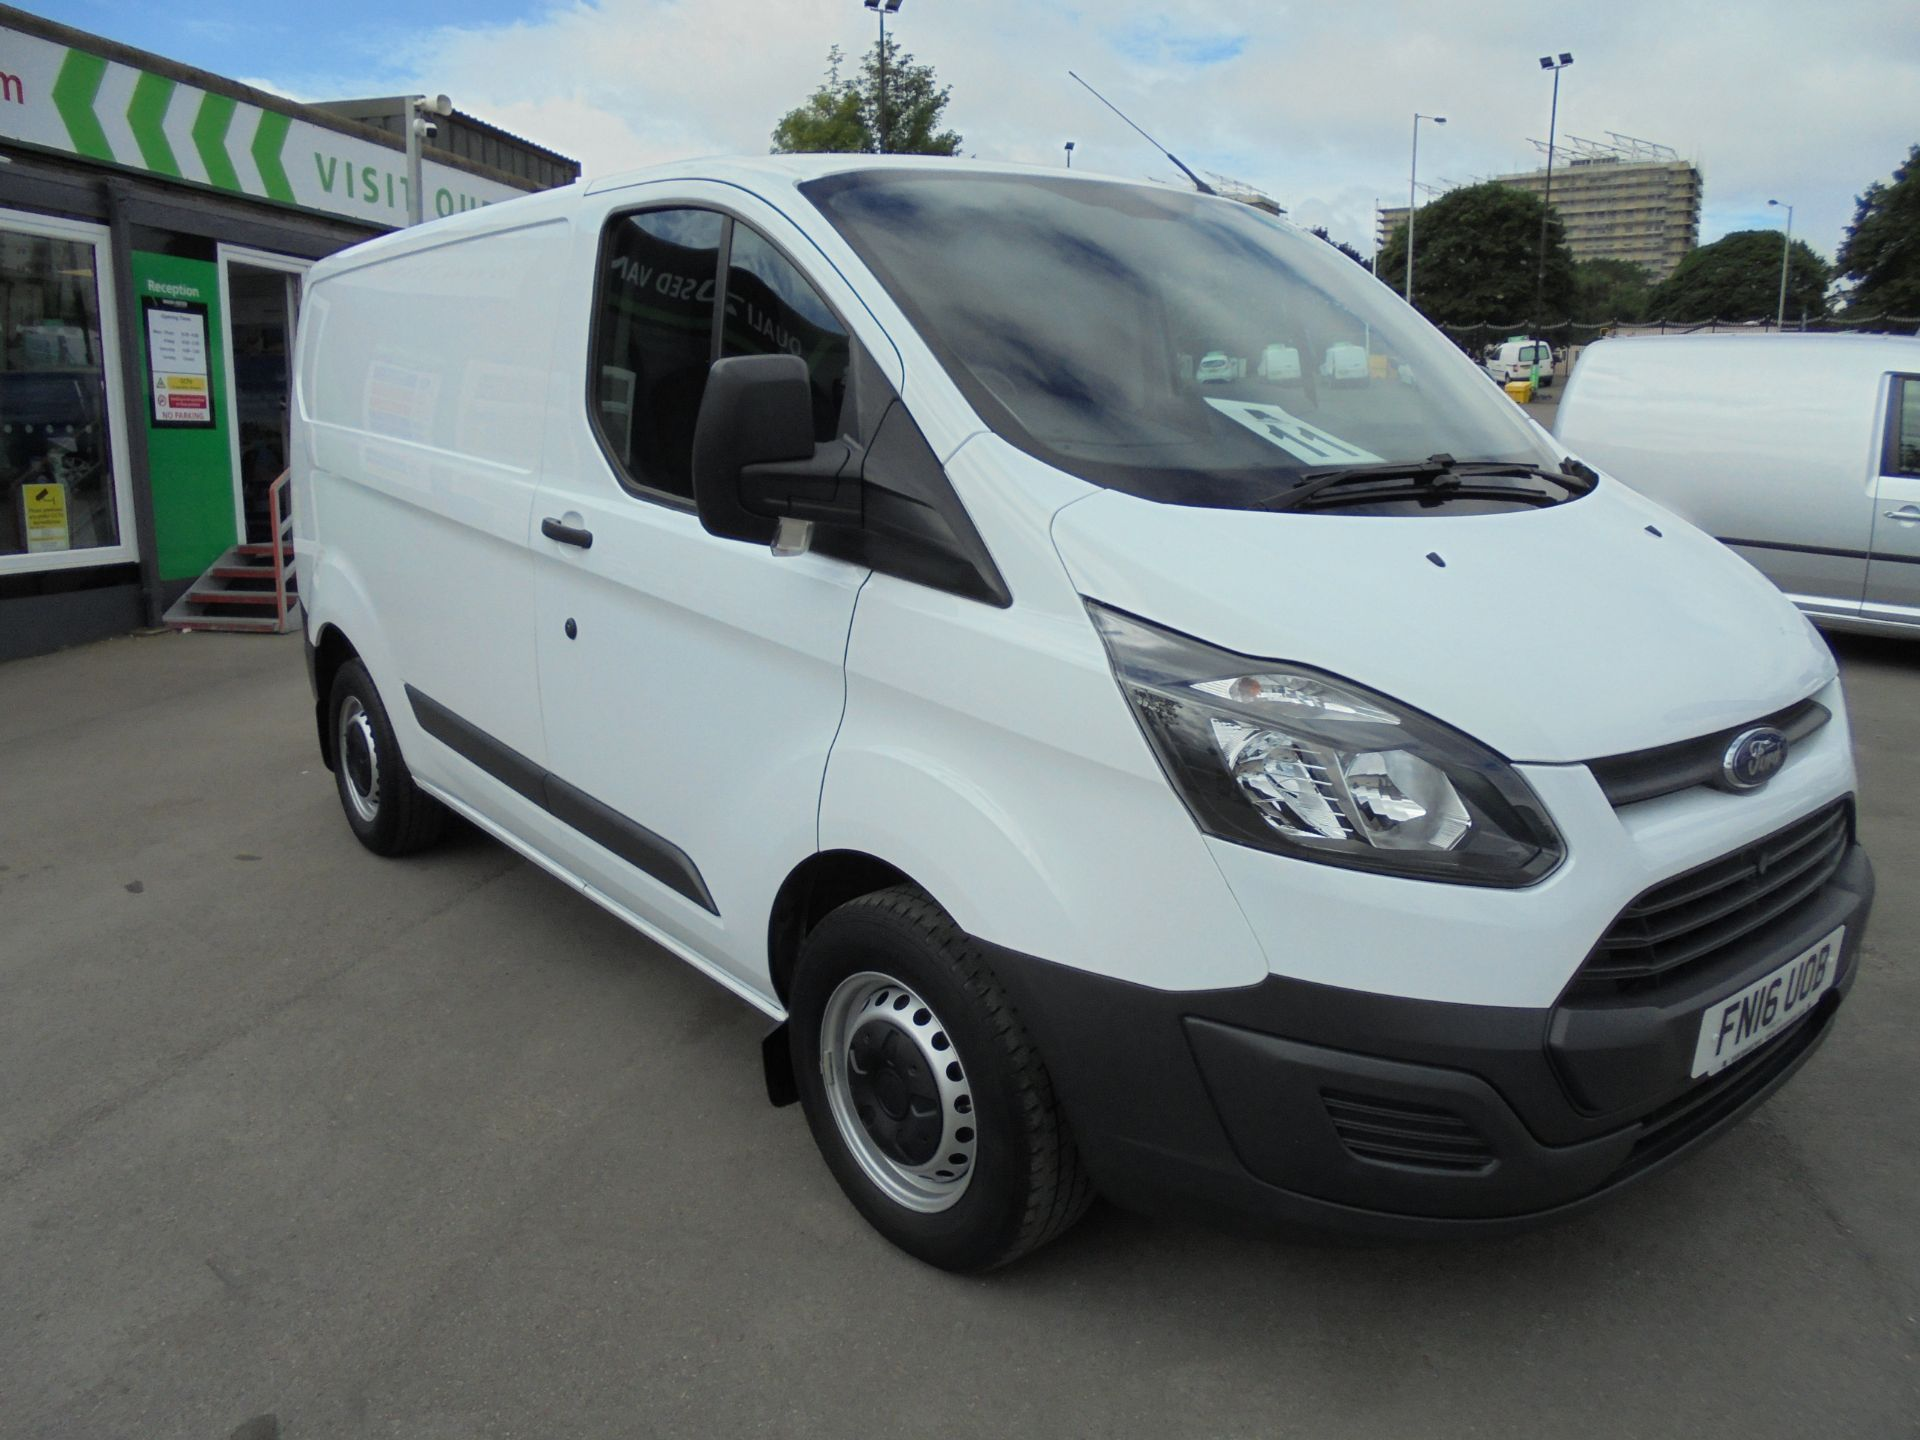 2016 Ford Transit Custom 2.2 Tdci 100Ps High Roof Van (FG16UOB)